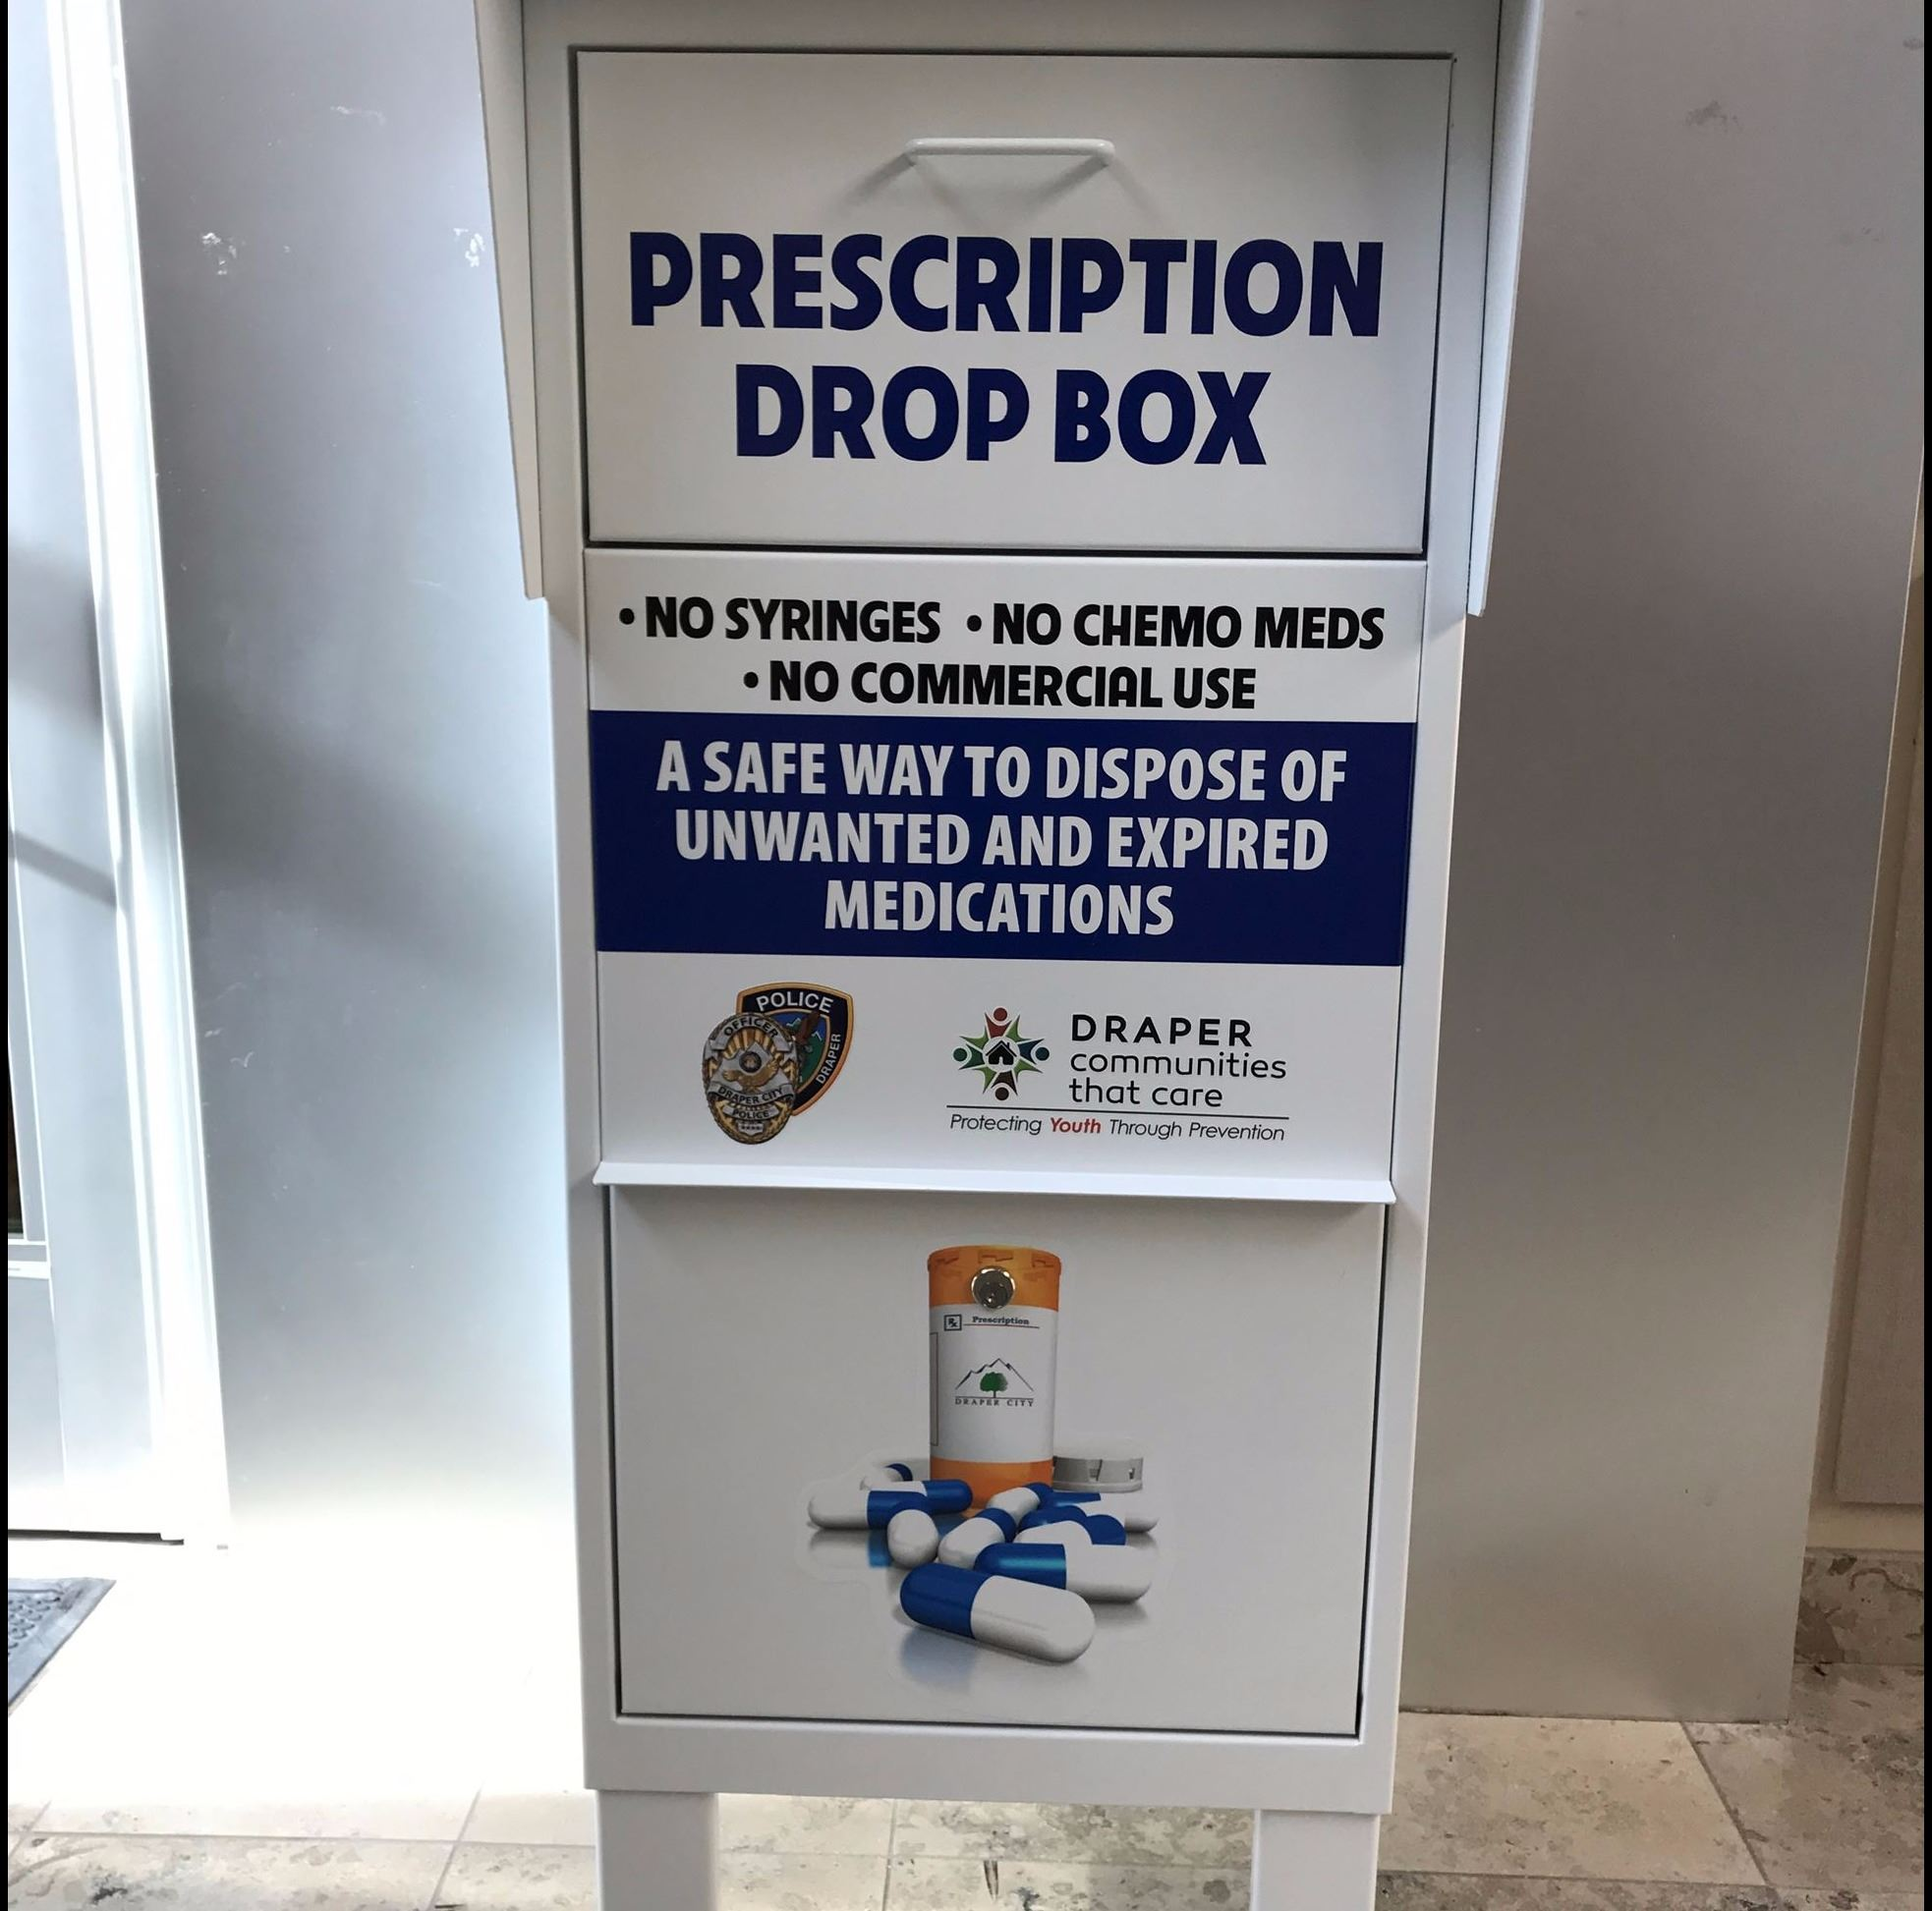 Drug take back depository receptacle